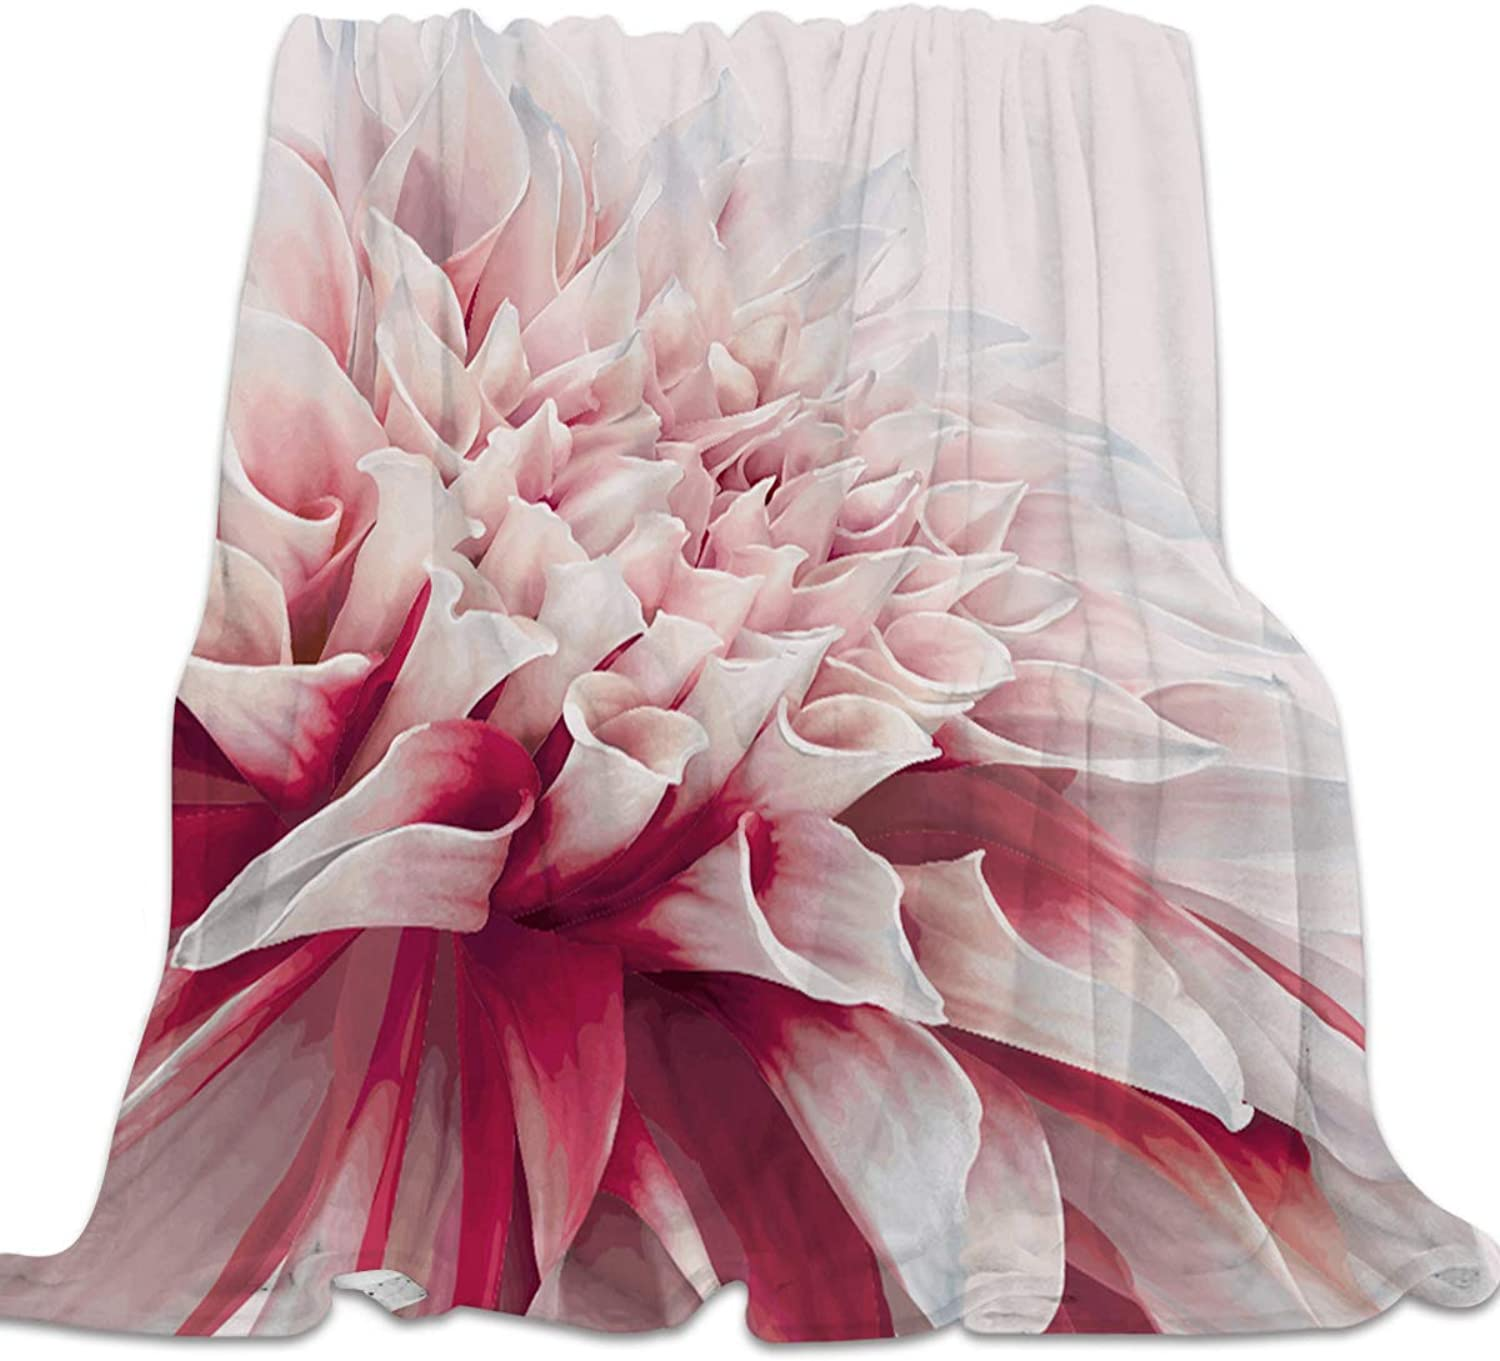 YEHO Art Gallery Flannel Fleece Bed Blanket Soft Throw-Blankets Home Decor,Stylish Flower Pattern Lightweight Kids Blankets for Sofa Couch Bedroom Living Room,49x59inch